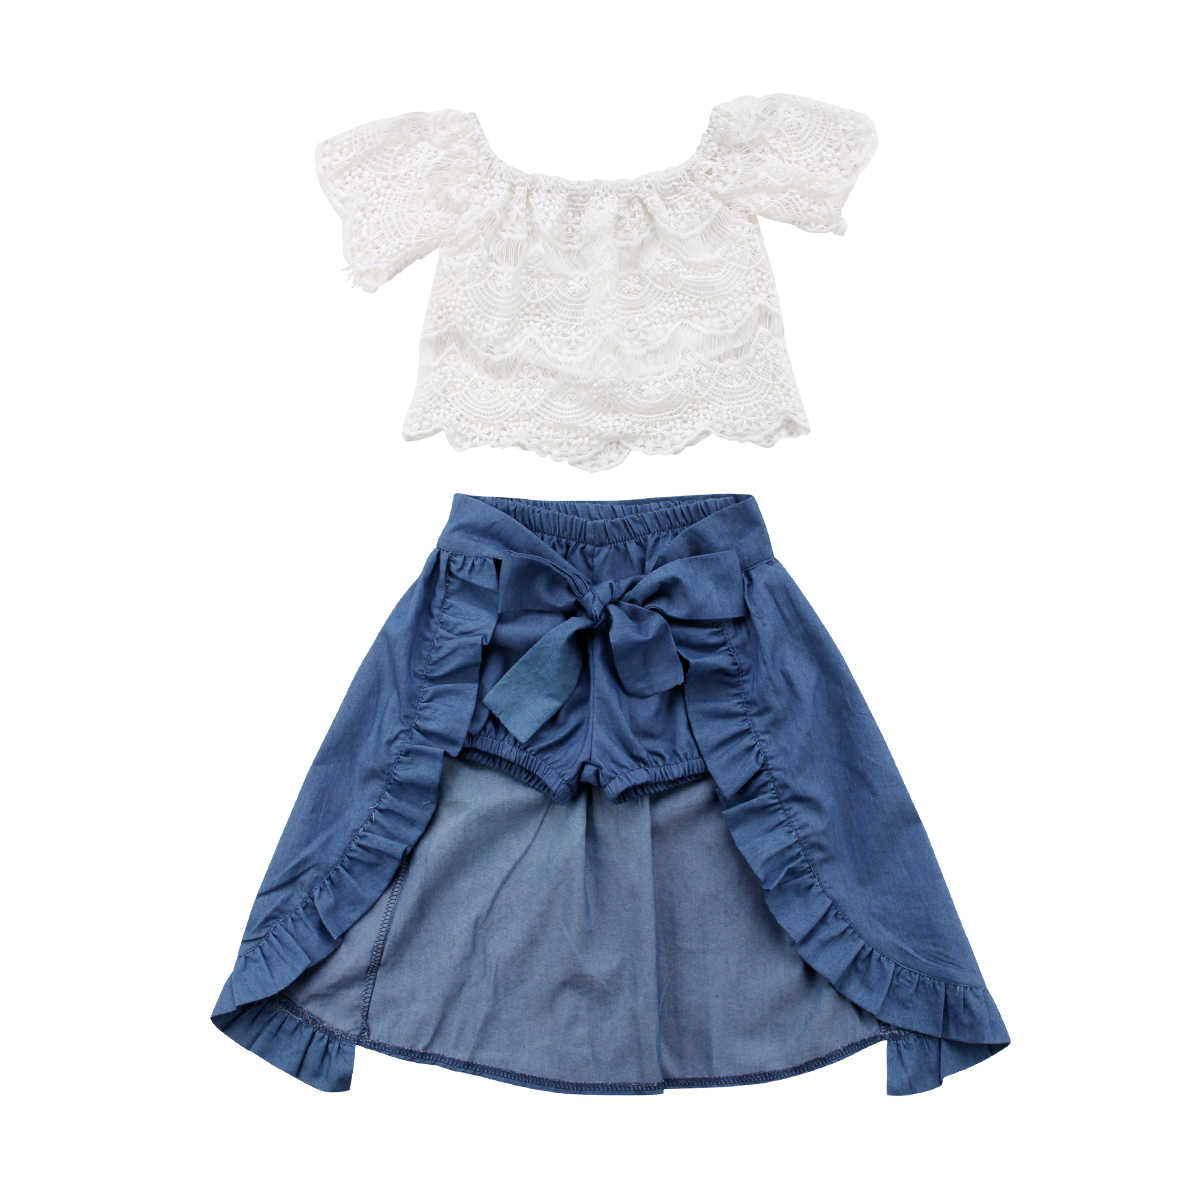 b00f3454ab Newborn Infant Kids Baby Girls Clothes Sets Lace Short Sleeve Off-shoulder  T-shirt